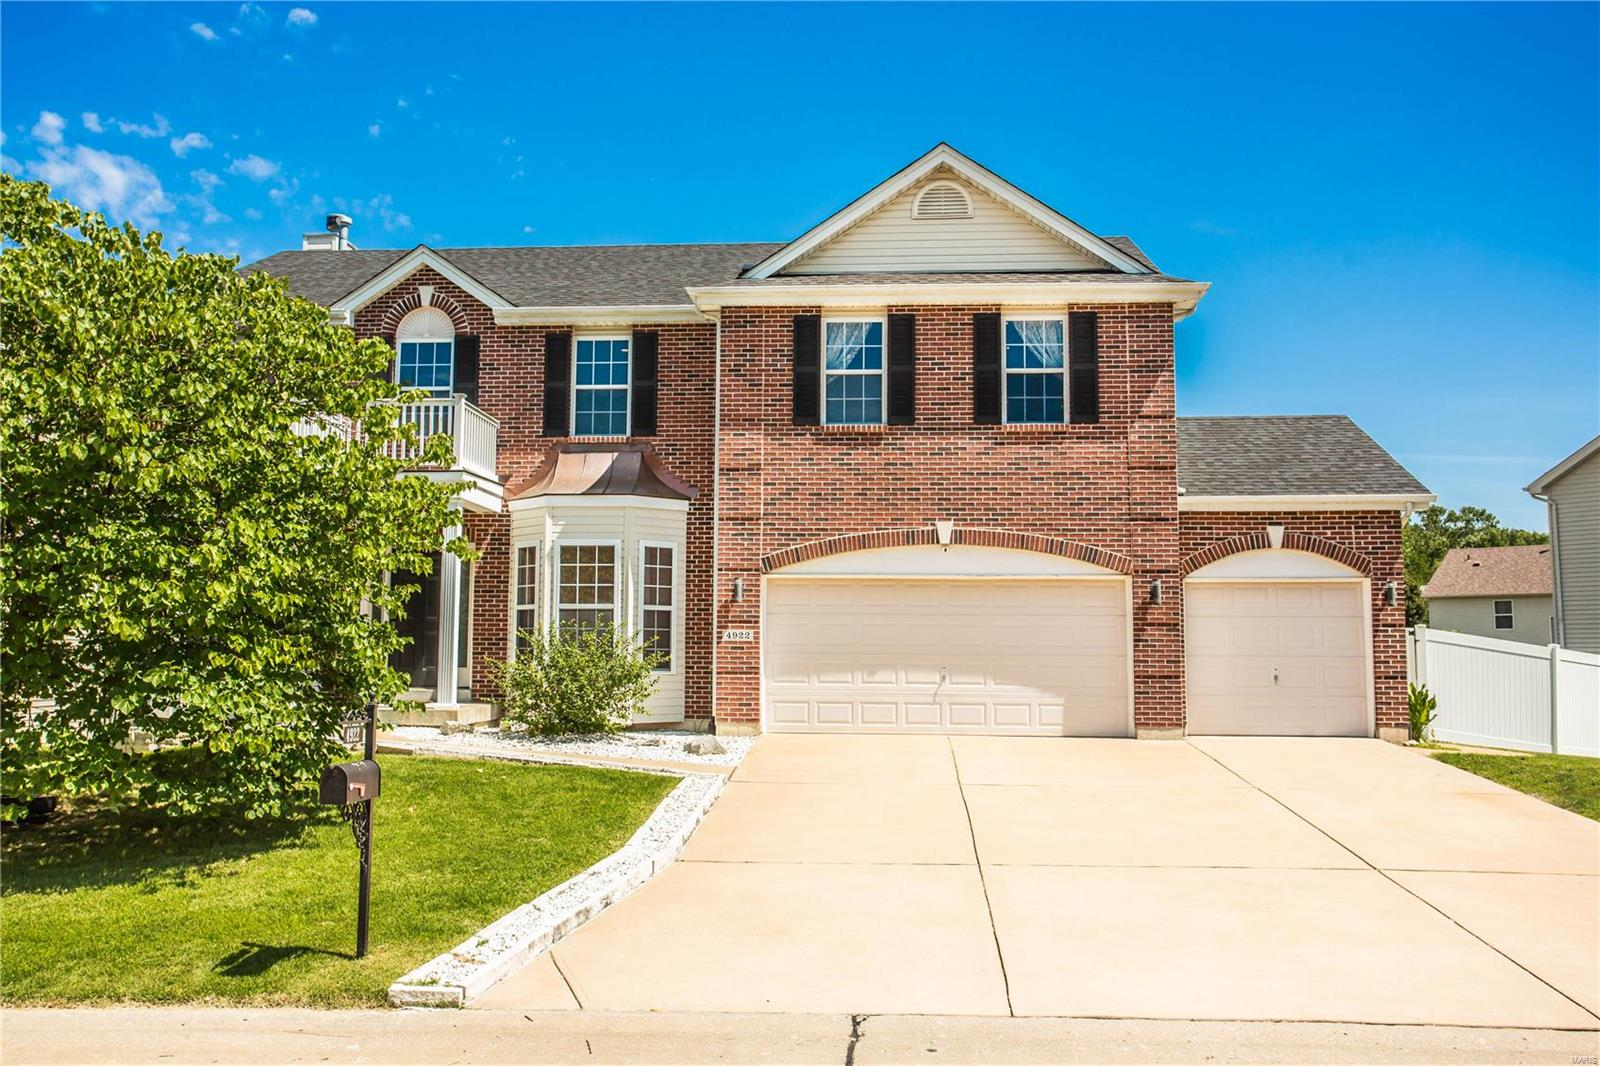 4922 Romaine Spring Drive Property Photo - Fenton, MO real estate listing